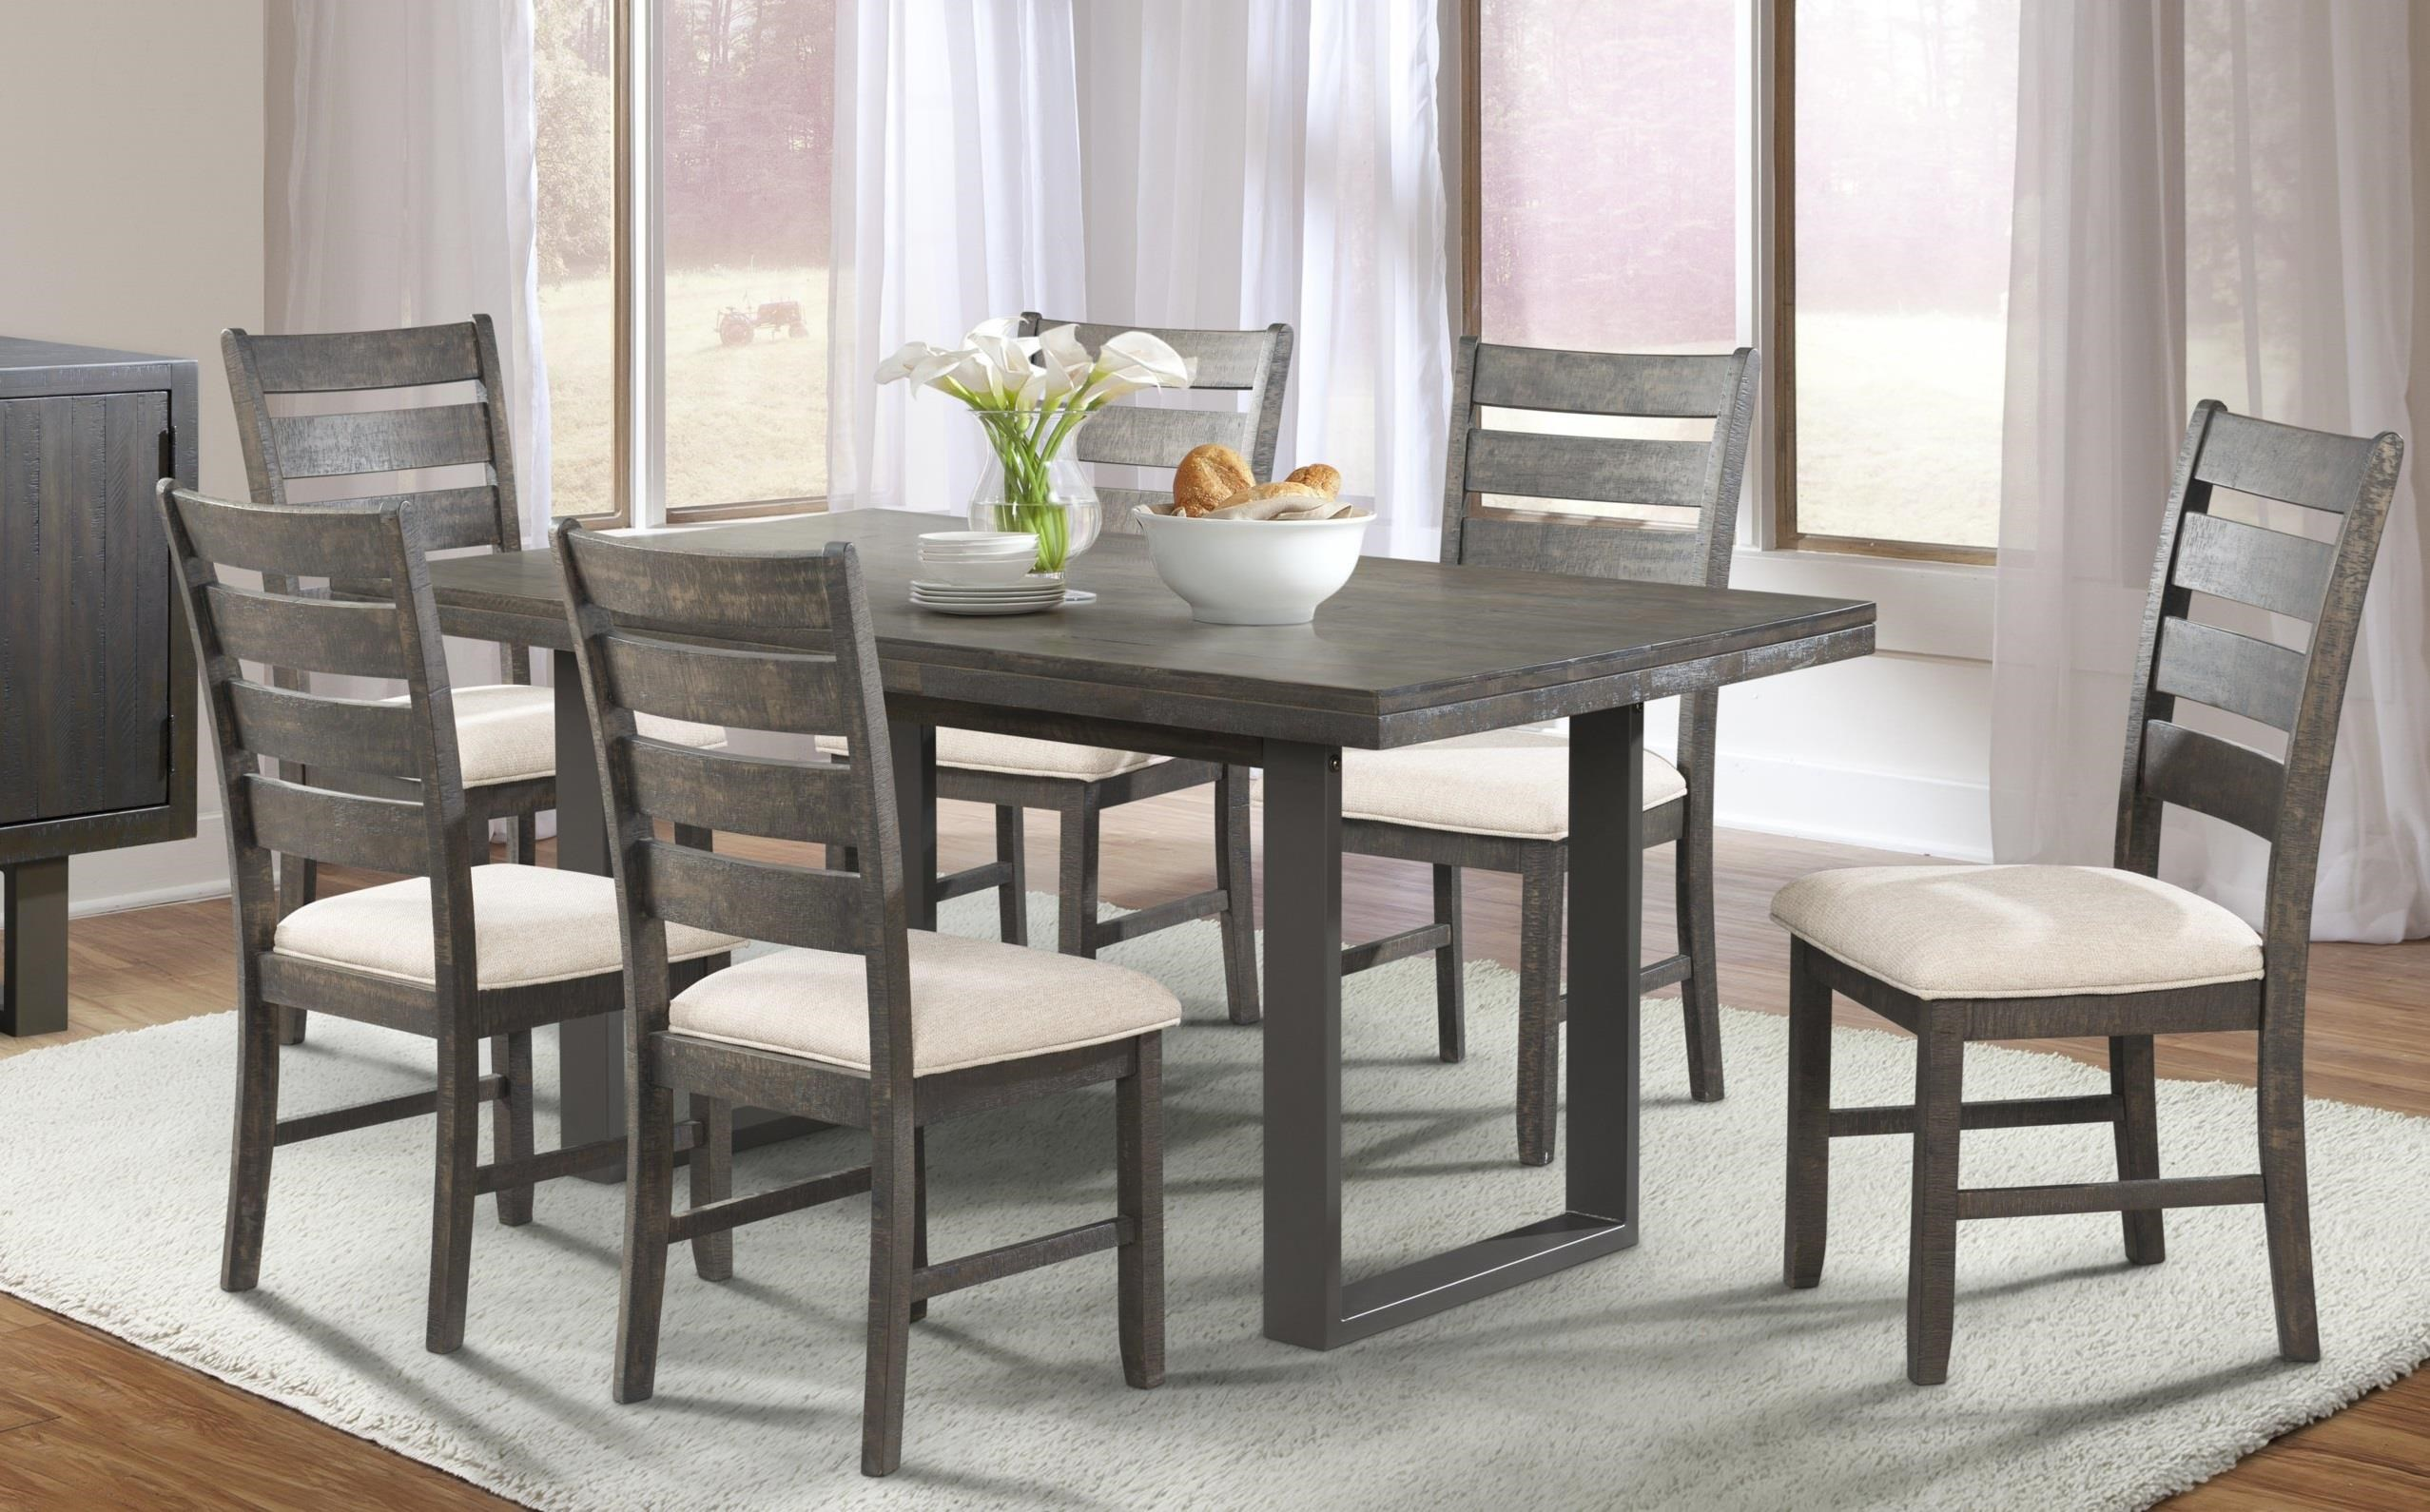 Elements International Sawyer Dining Table U0026 4 Side Chairs   Item Number:  ELEM GRP